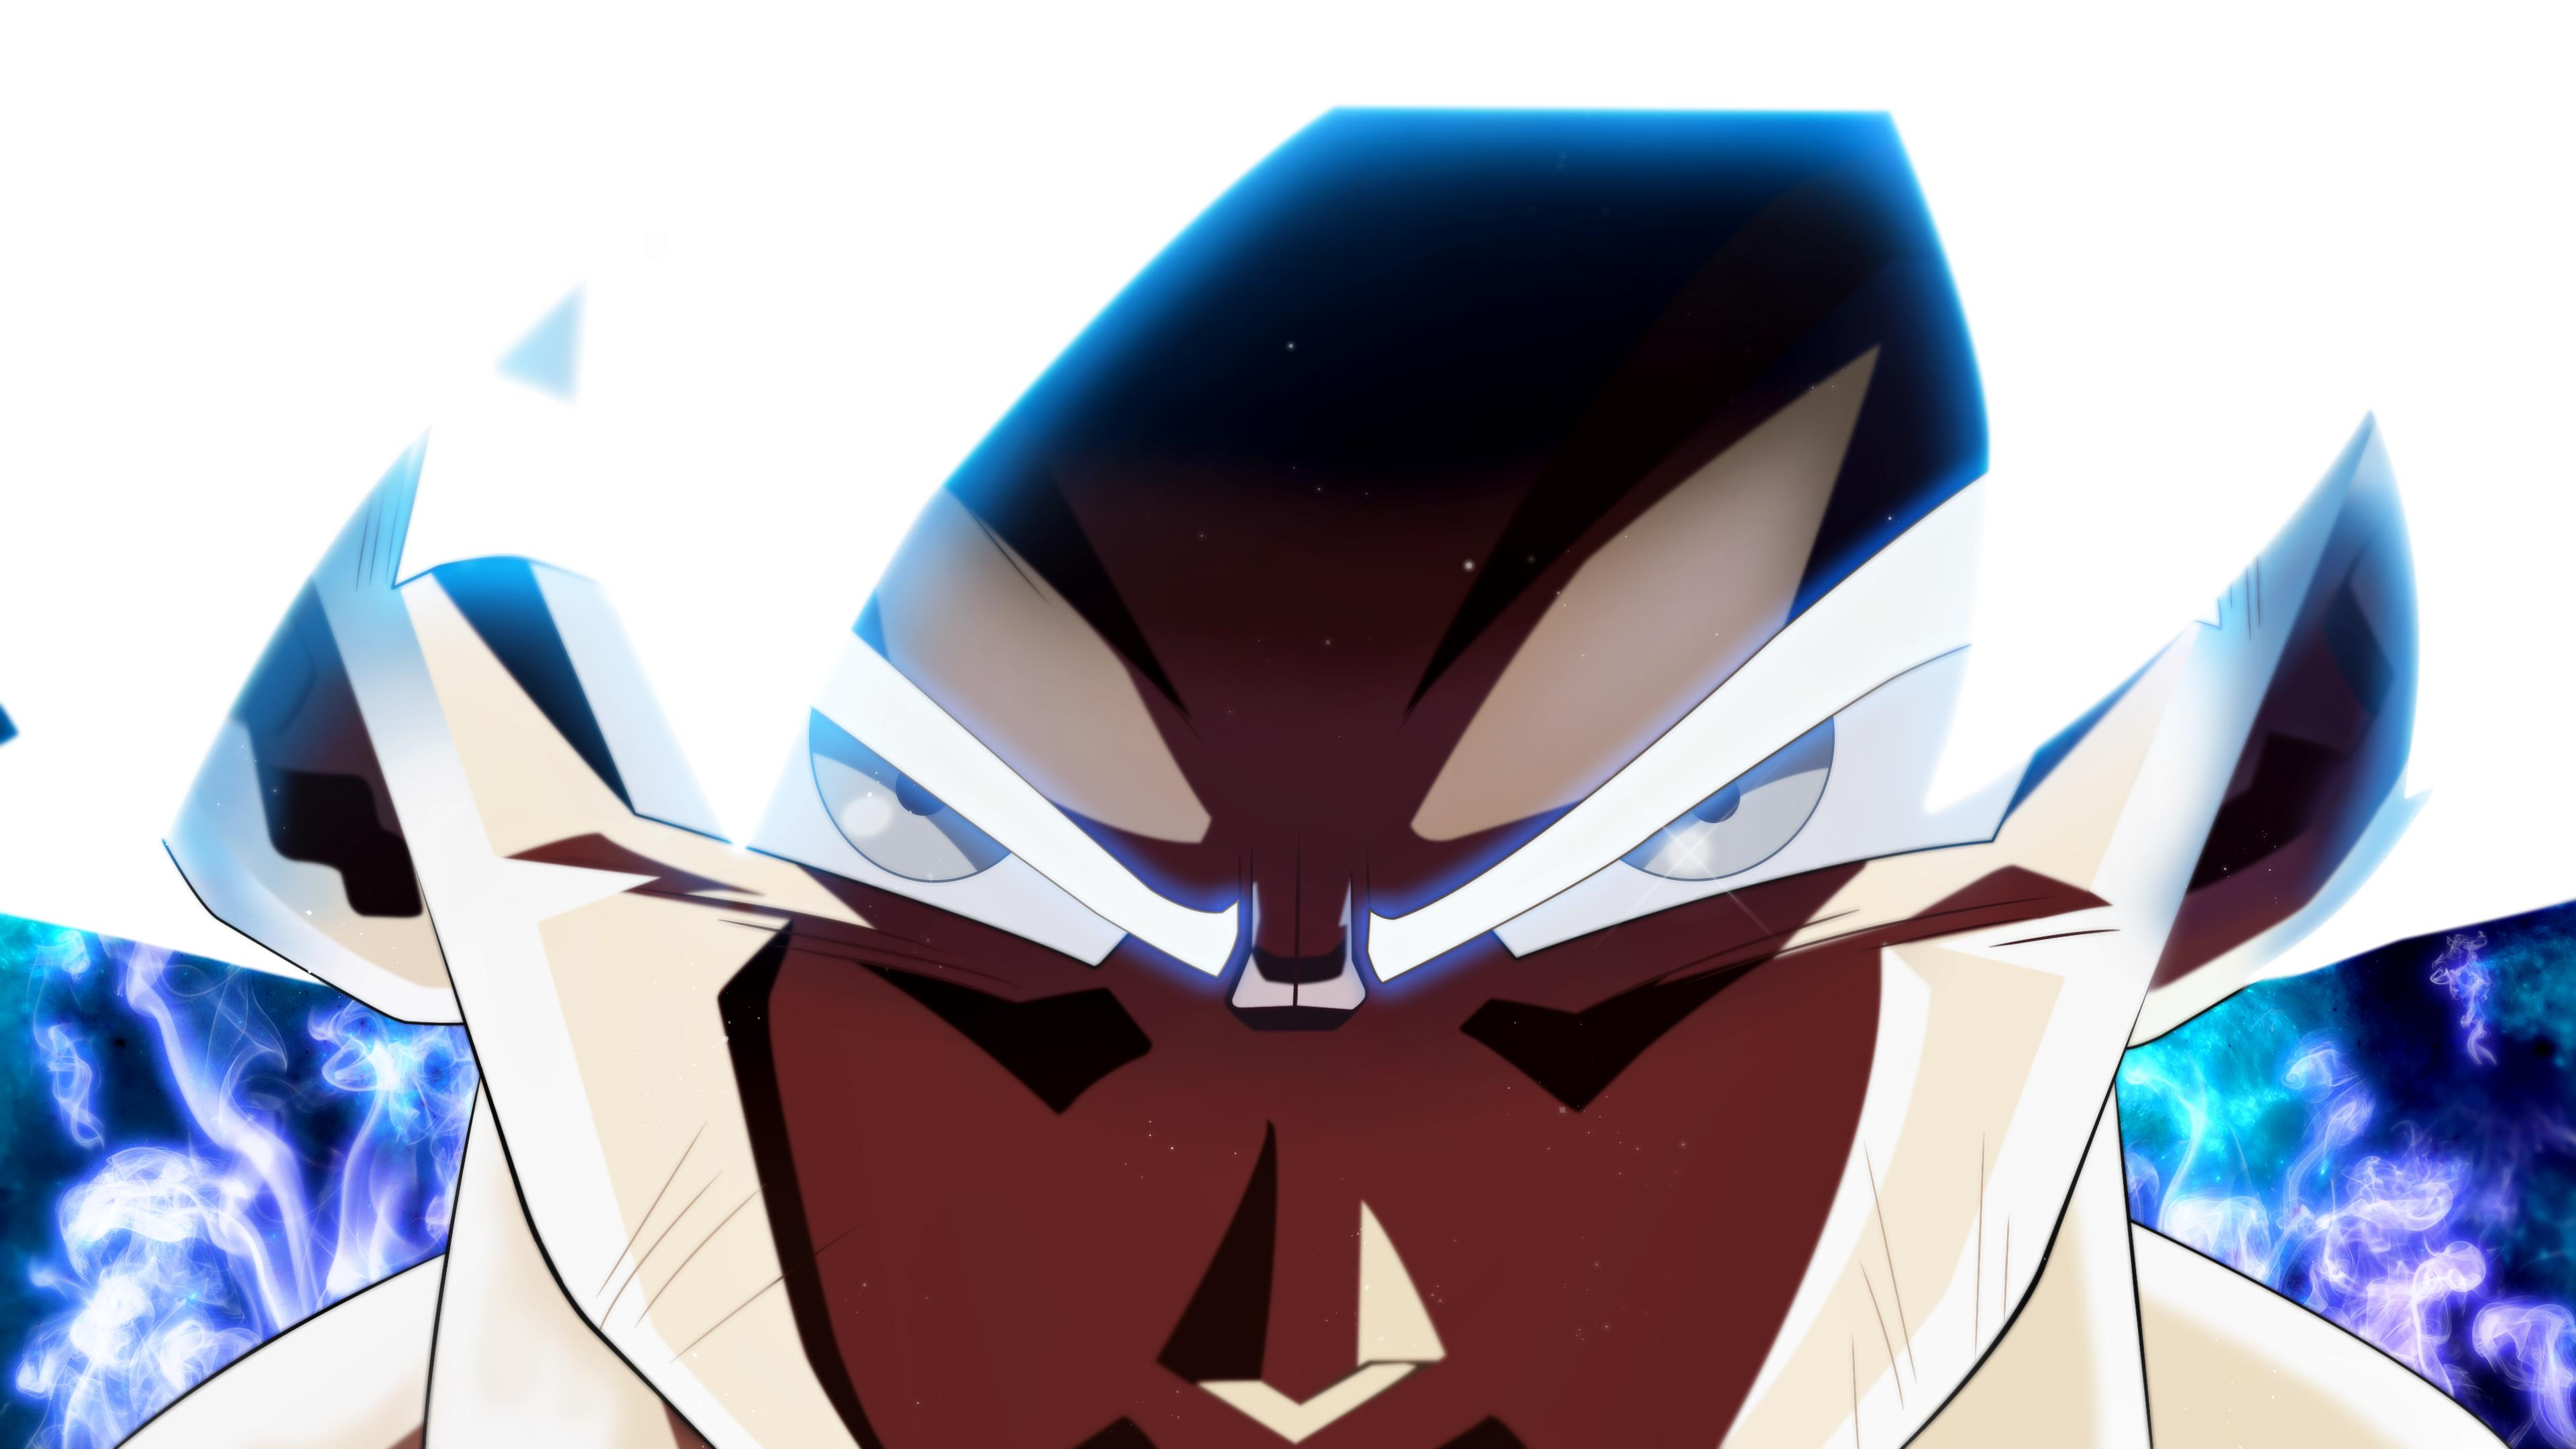 Goku 4k Wallpapers For Your Desktop Or Mobile Screen Free And Easy